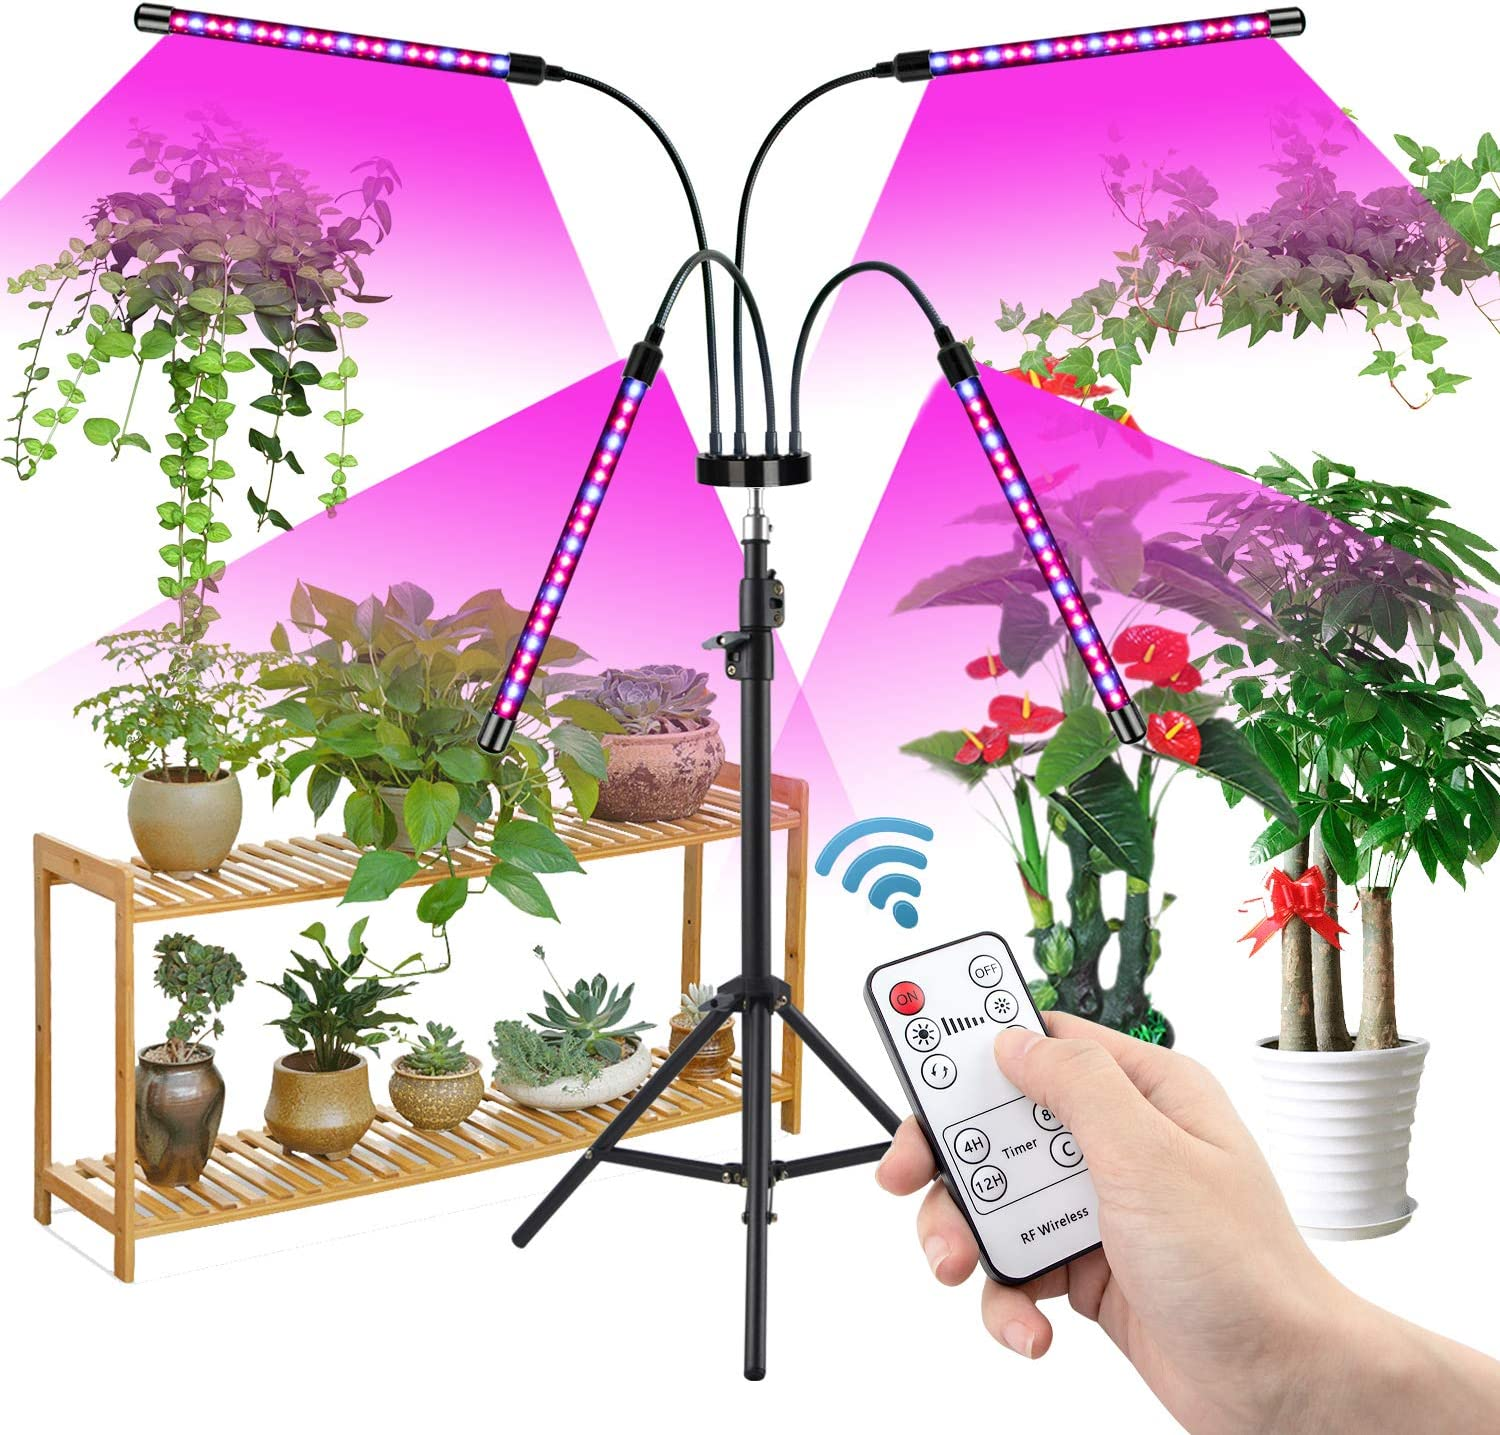 Grow Light with Stand, Growstar Newest Four-Head Full Spectrum Floor Plant Light with Dual Controllers for Indoor Plants, Tripod Stand Adjustable 15-47 in, Timing 3H/9H/12H, 3 Modes&10 Brightness